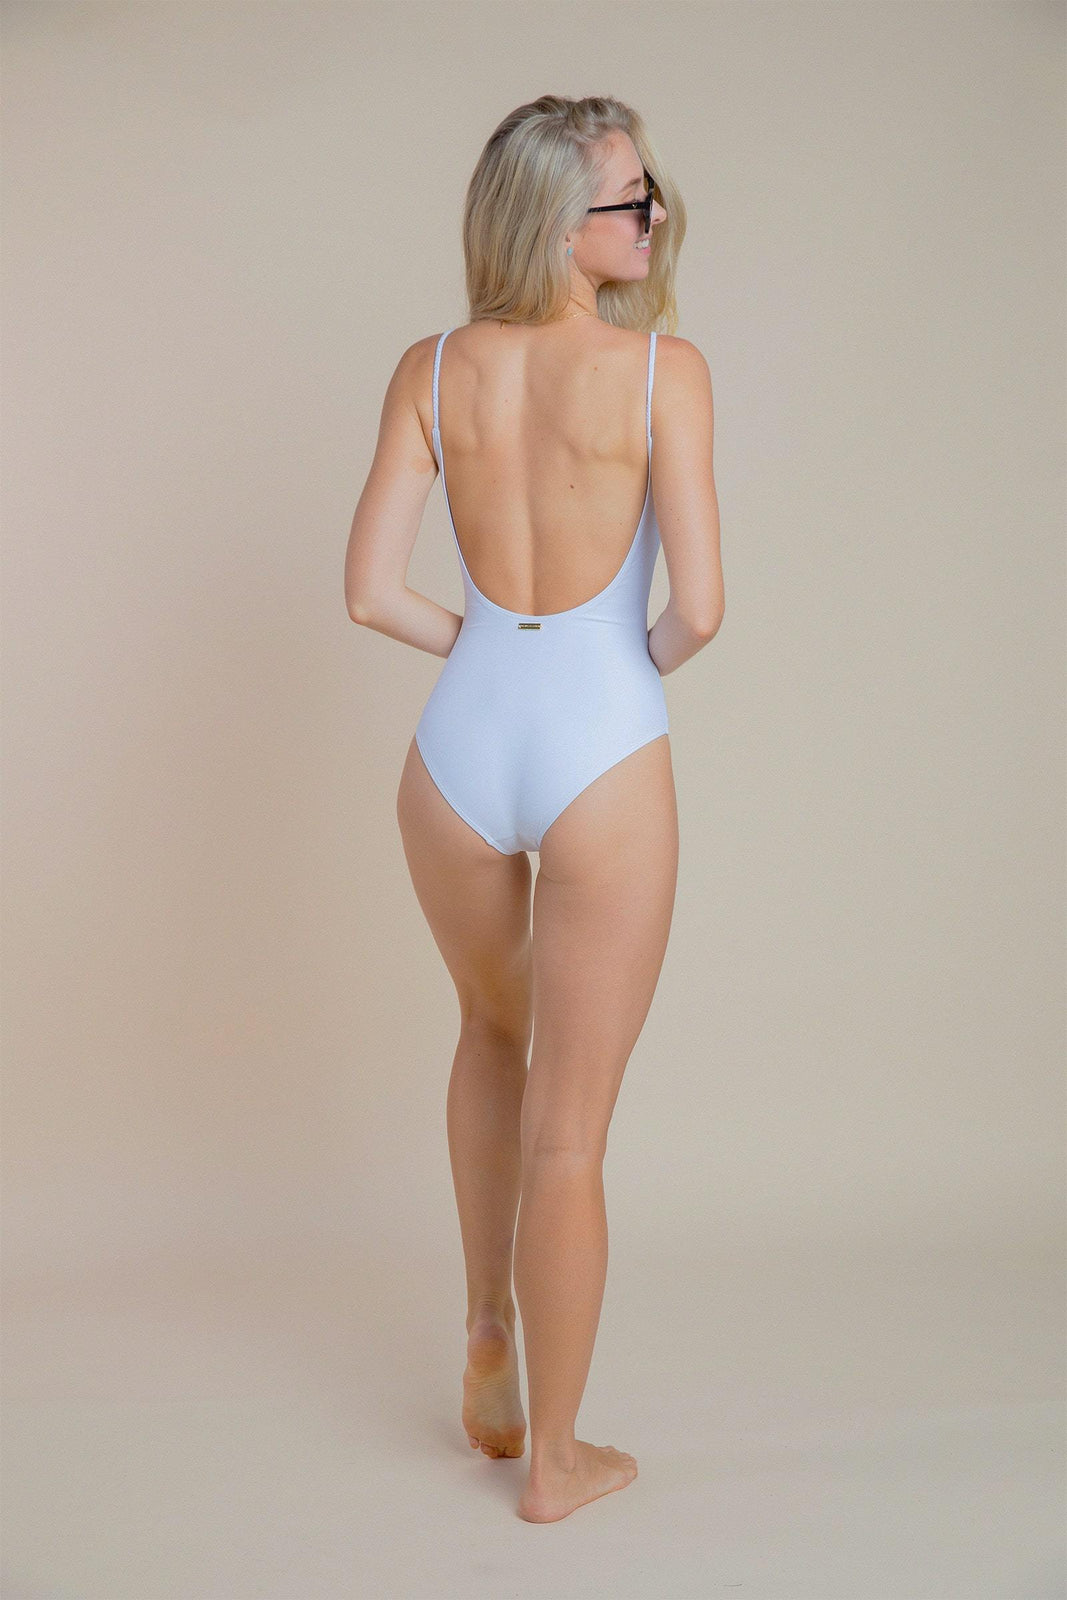 Malibu Braided Strap One Piece in White